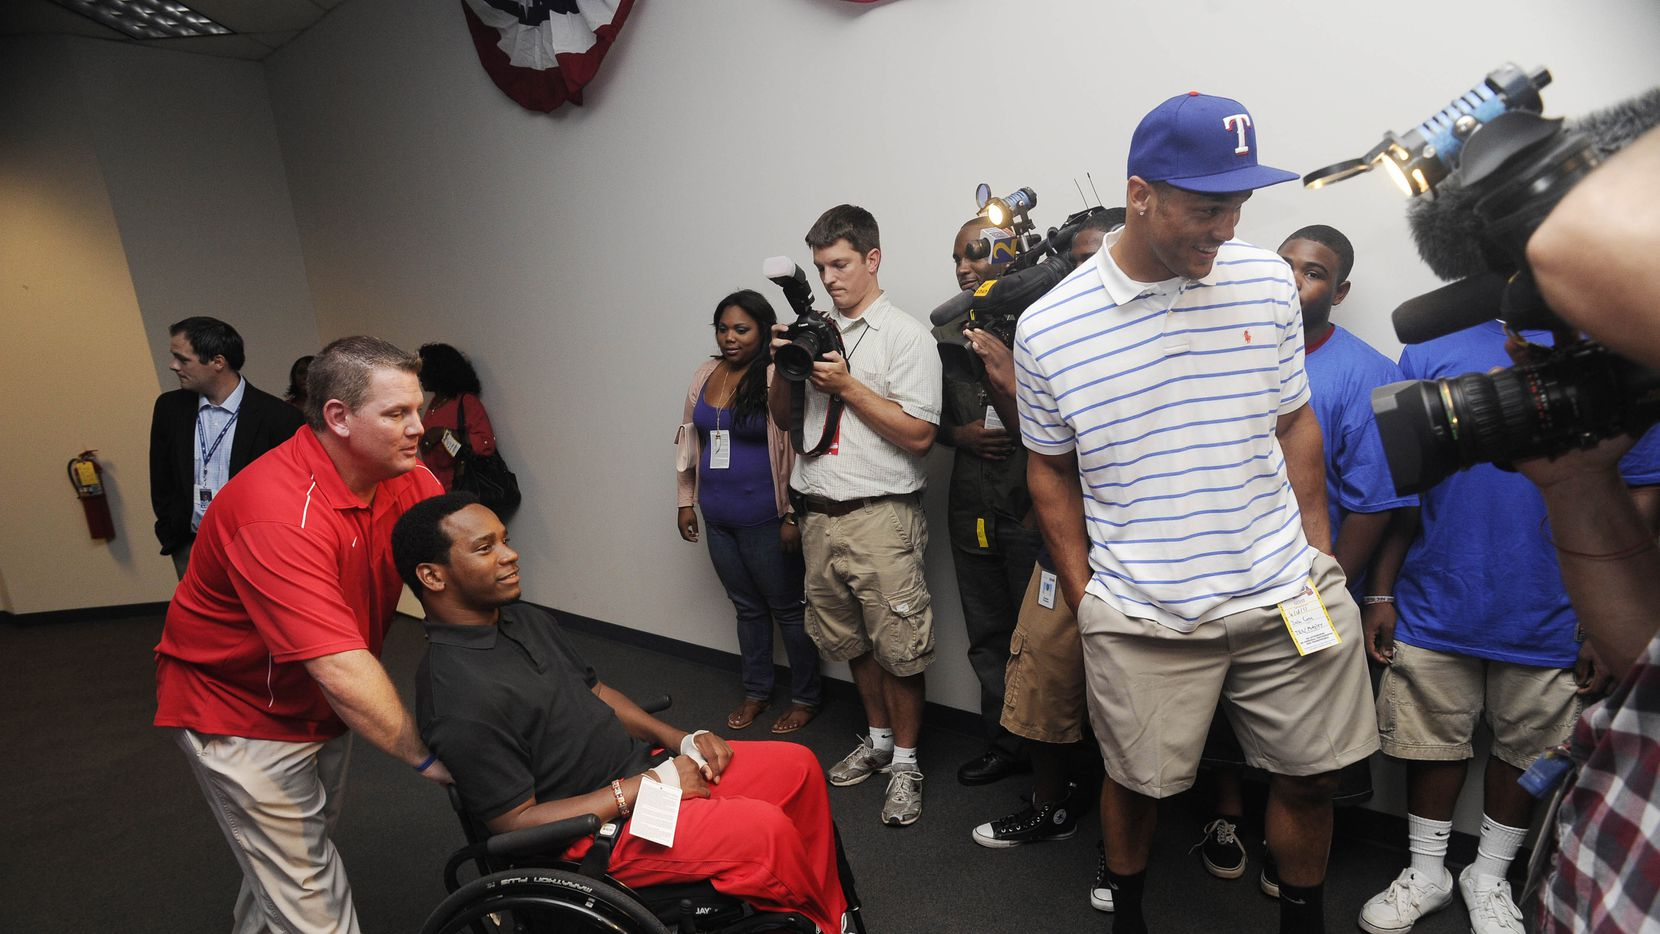 Recent Texas Ranger draftee, Johnathan Taylor, who sustained partial paralysis in an outfield collision with Georgia teammate and fellow draftee Zach Cone, follows behind Cone while being pushed by Rangers scout Ryan Coe as they arrive for a press conference introducing the team's draft selections, before their baseball game against the Atlanta Braves, Saturday, June 18, 2011.